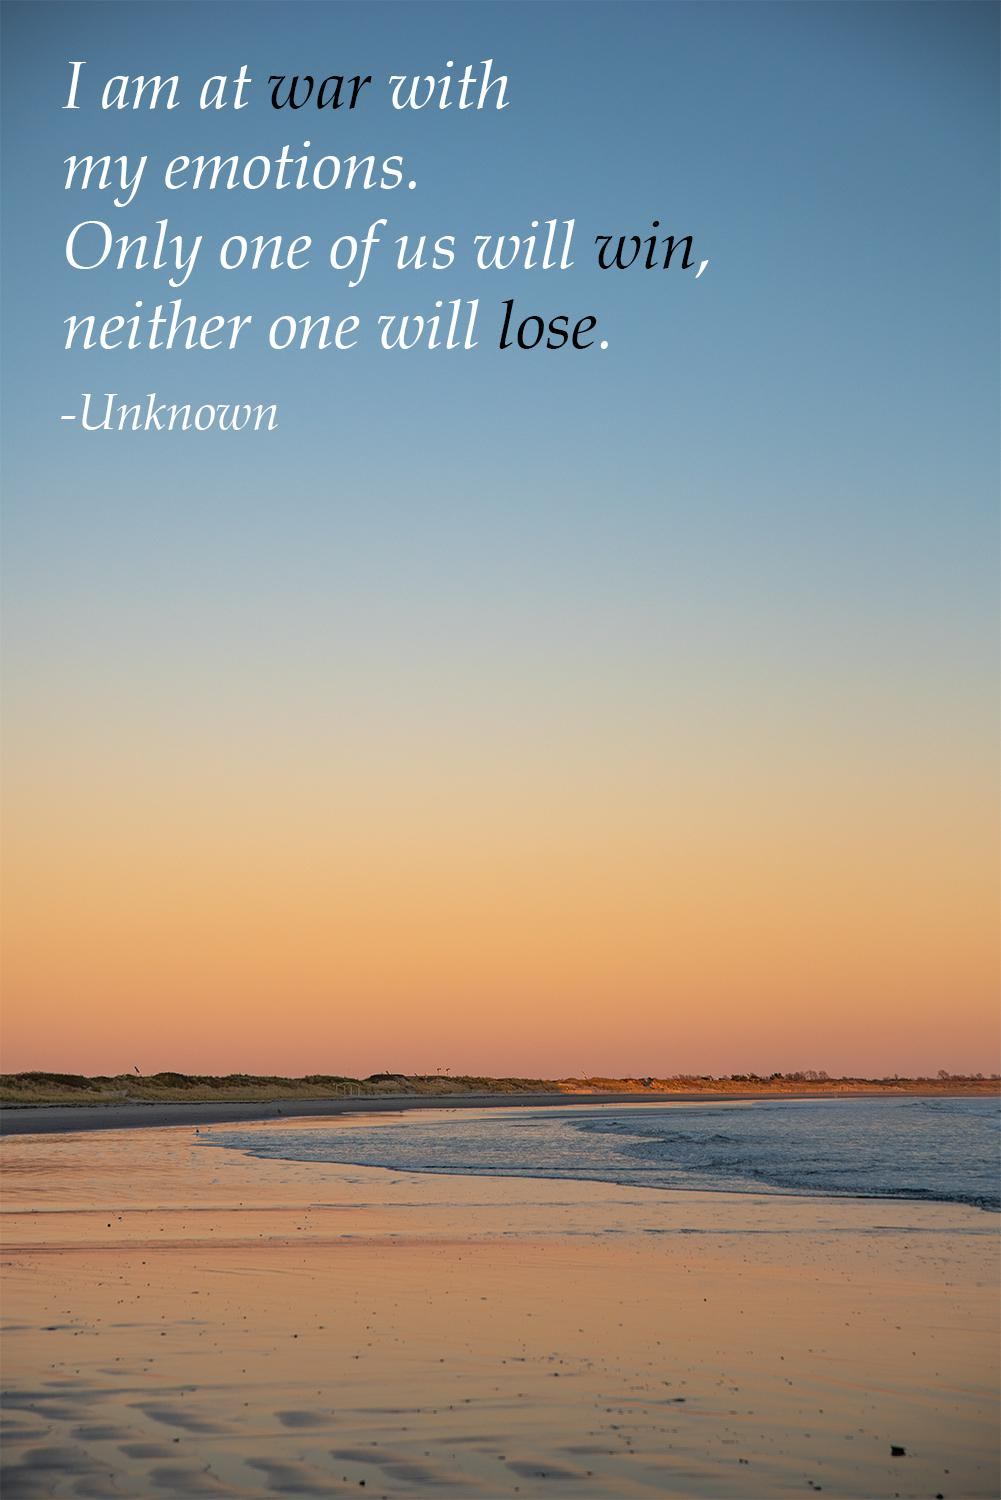 """I am at war with my emotions. Only one of us will win, neither one will lose."" -Unknown [1001×1500]"